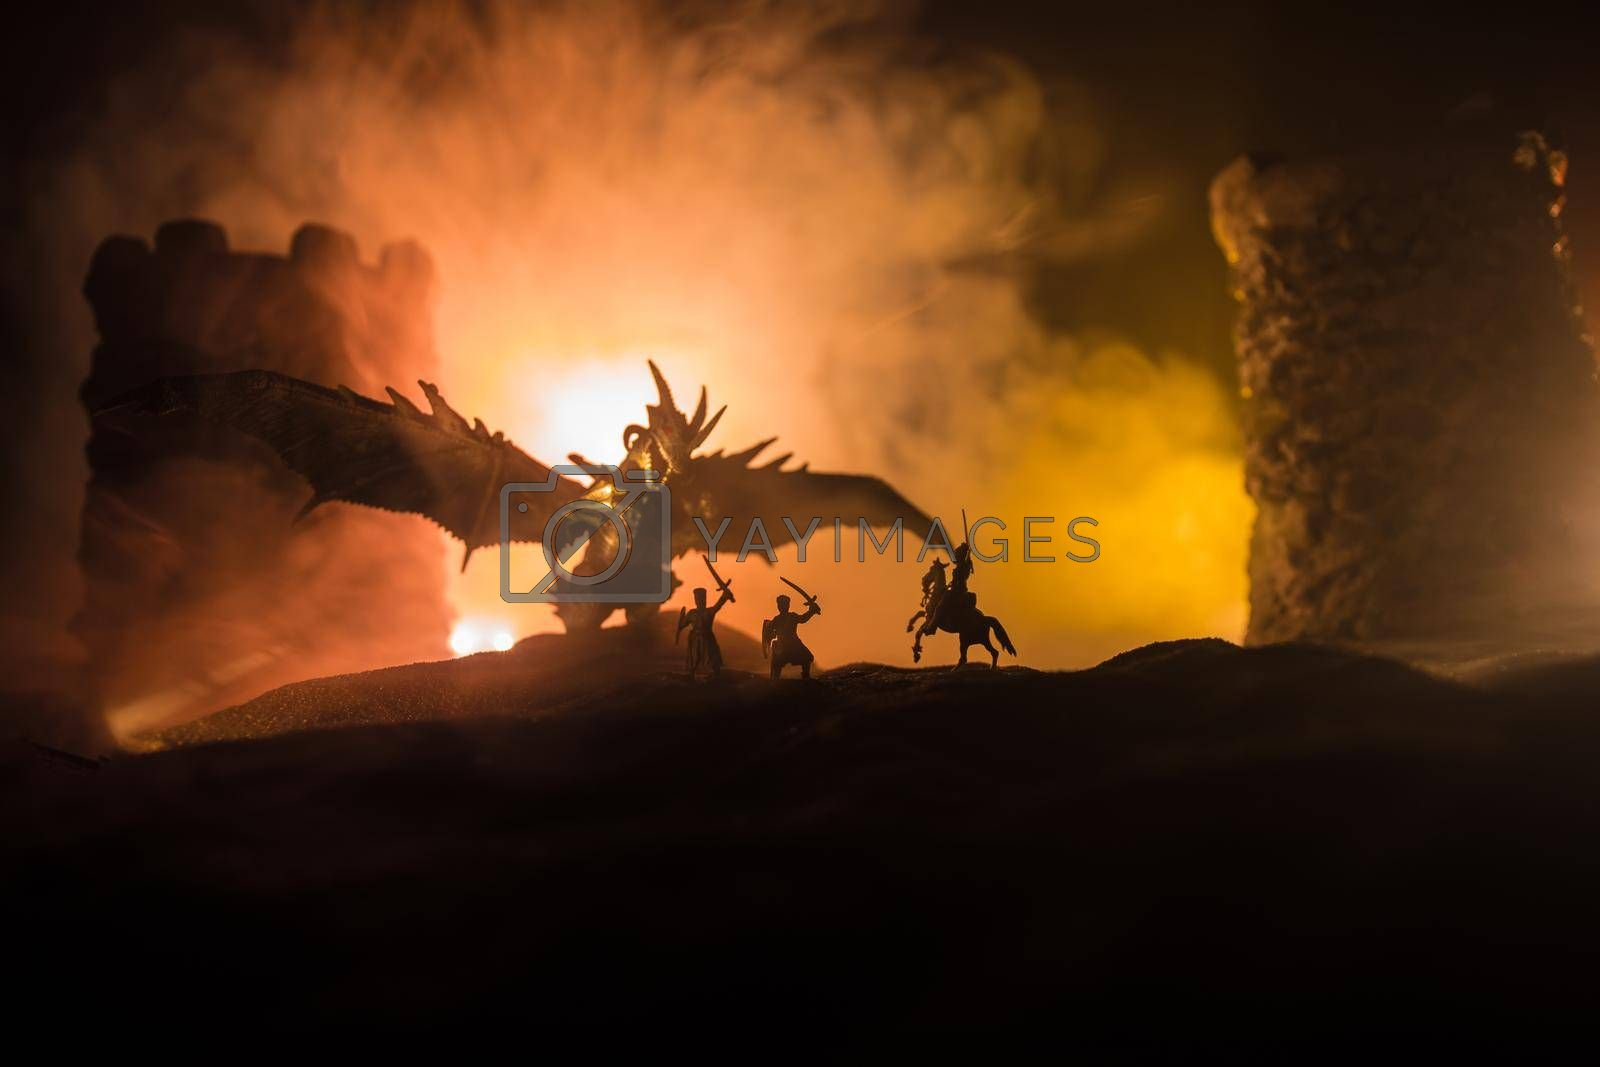 Fantasy battle scene with dragons attacking a medieval castle at night. Battle between dragon and heroic soldiers. Creative table decoration. Selective focus